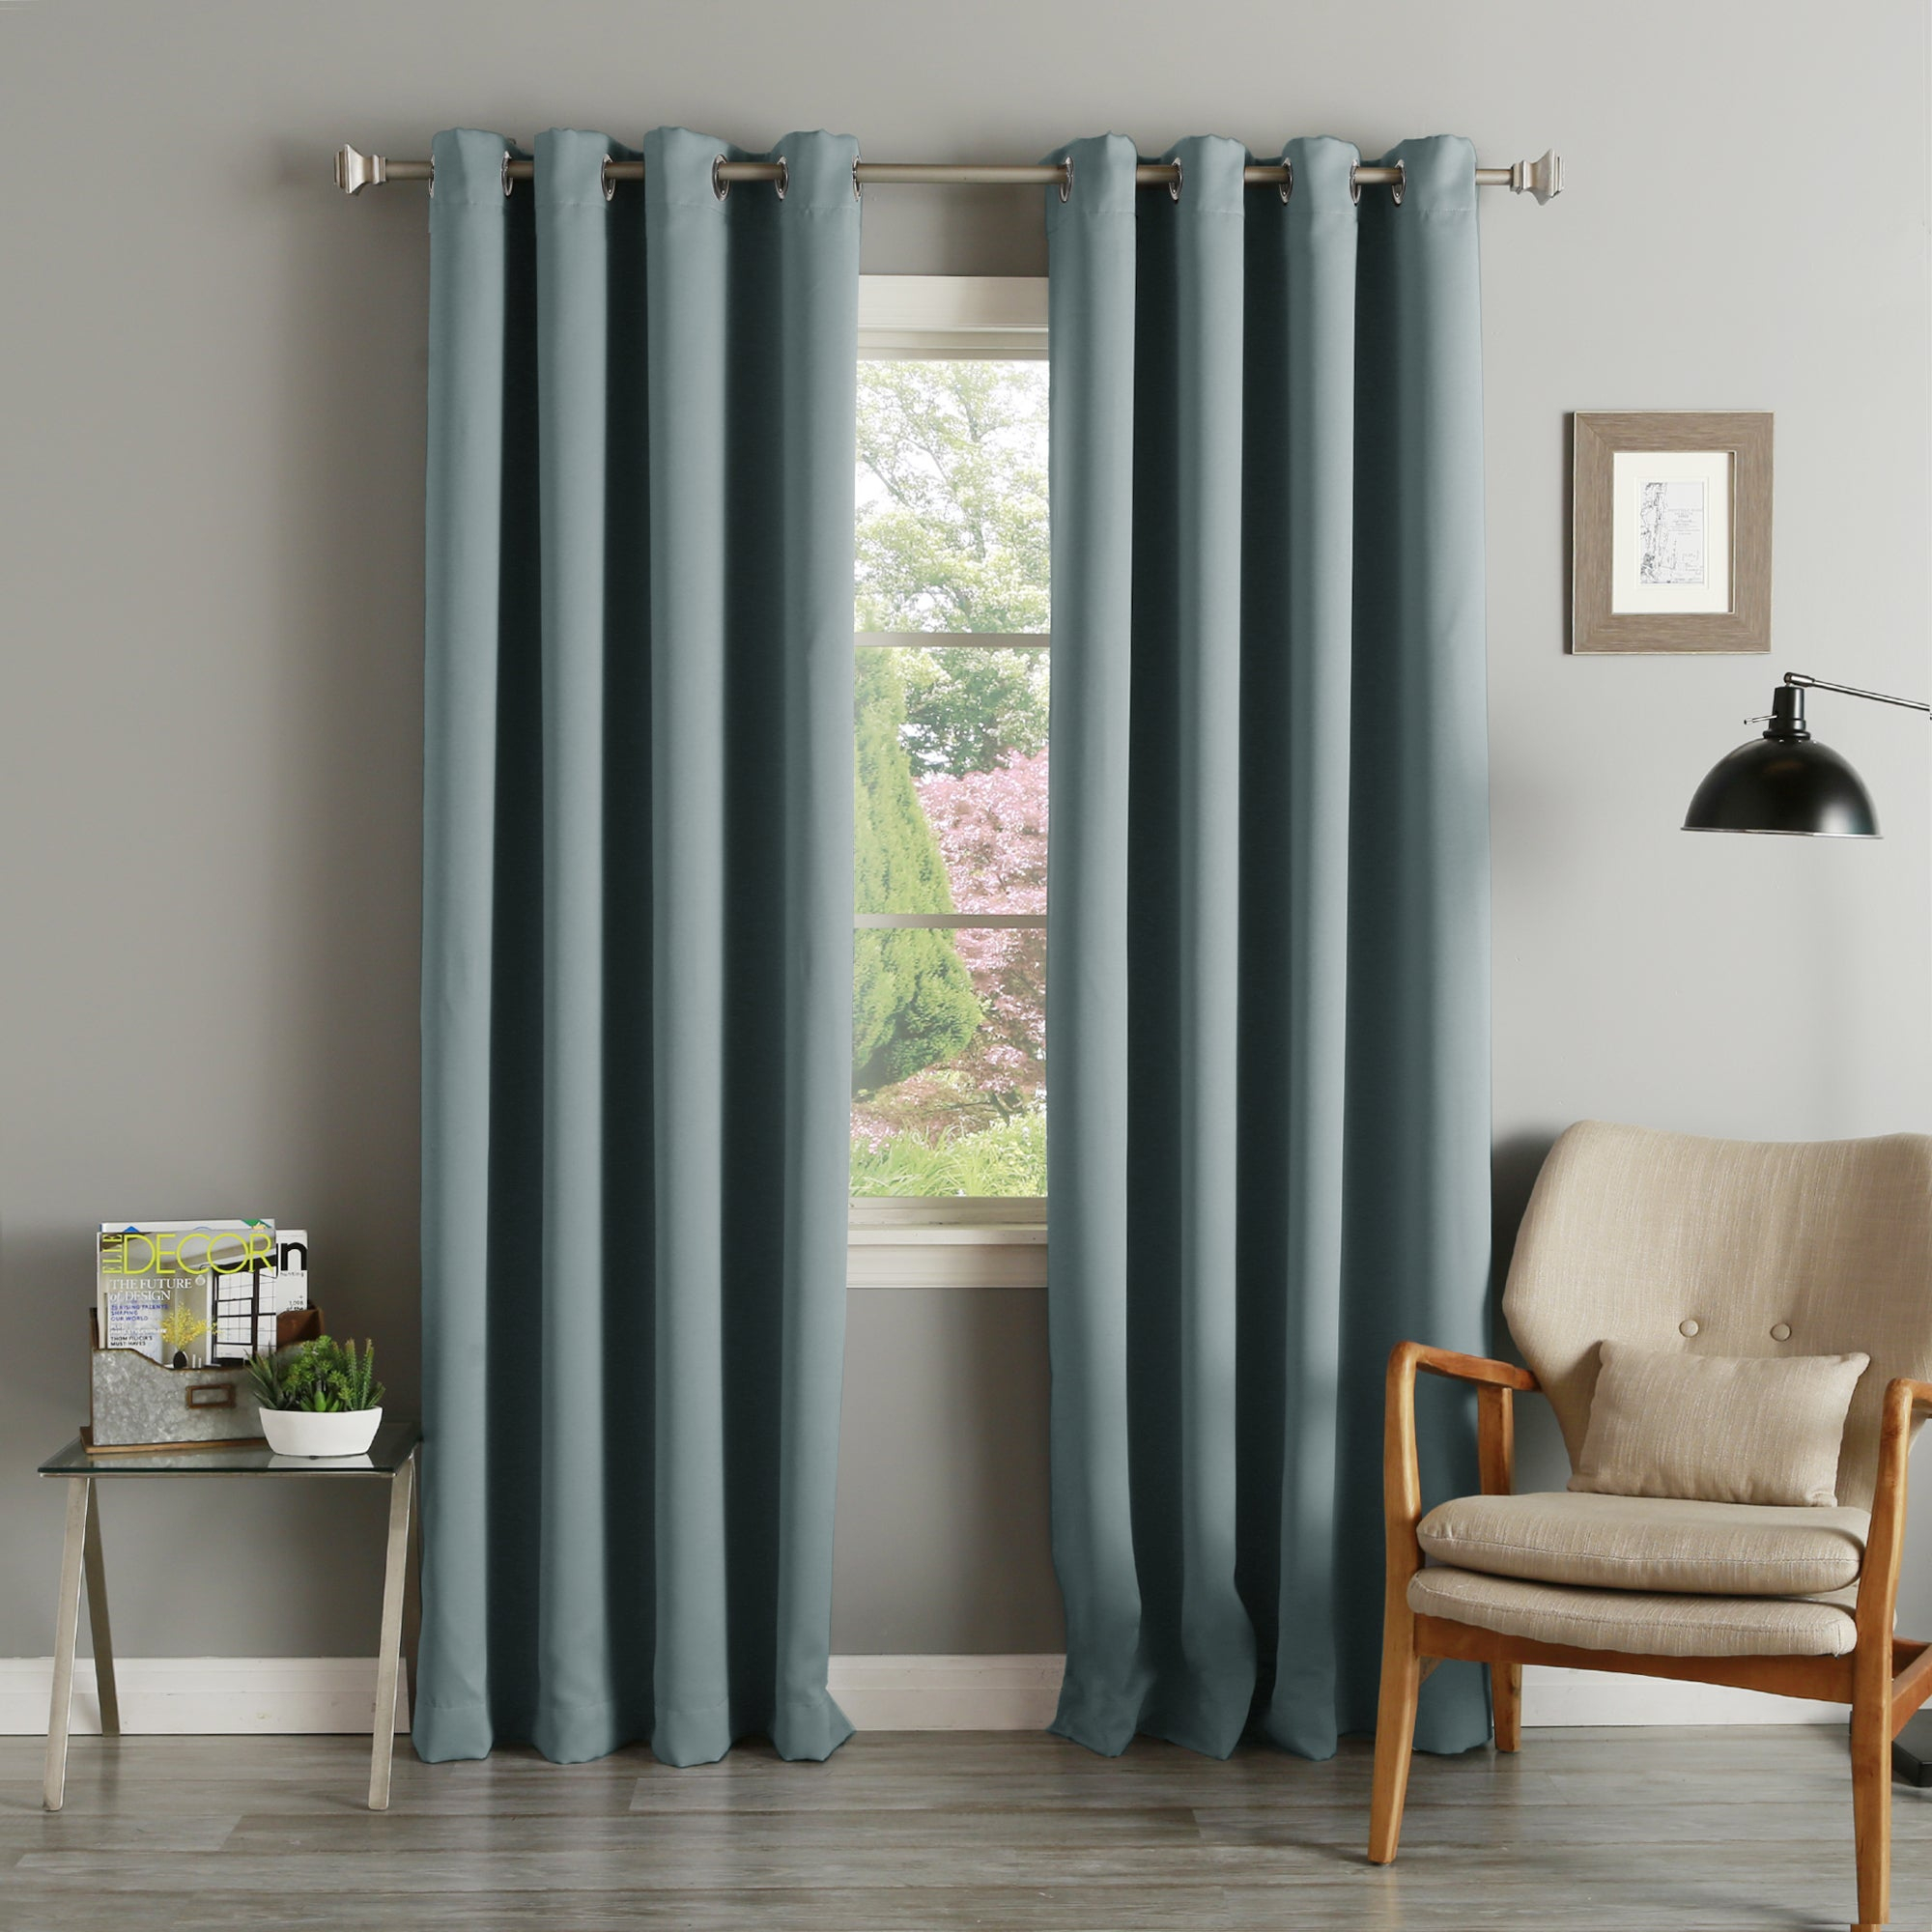 Aurora Home Silvertone Grommet Thermal Insulated Blackout Curtain Panel Pair With Silvertone Grommet Thermal Insulated Blackout Curtain Panel Pairs (View 6 of 30)